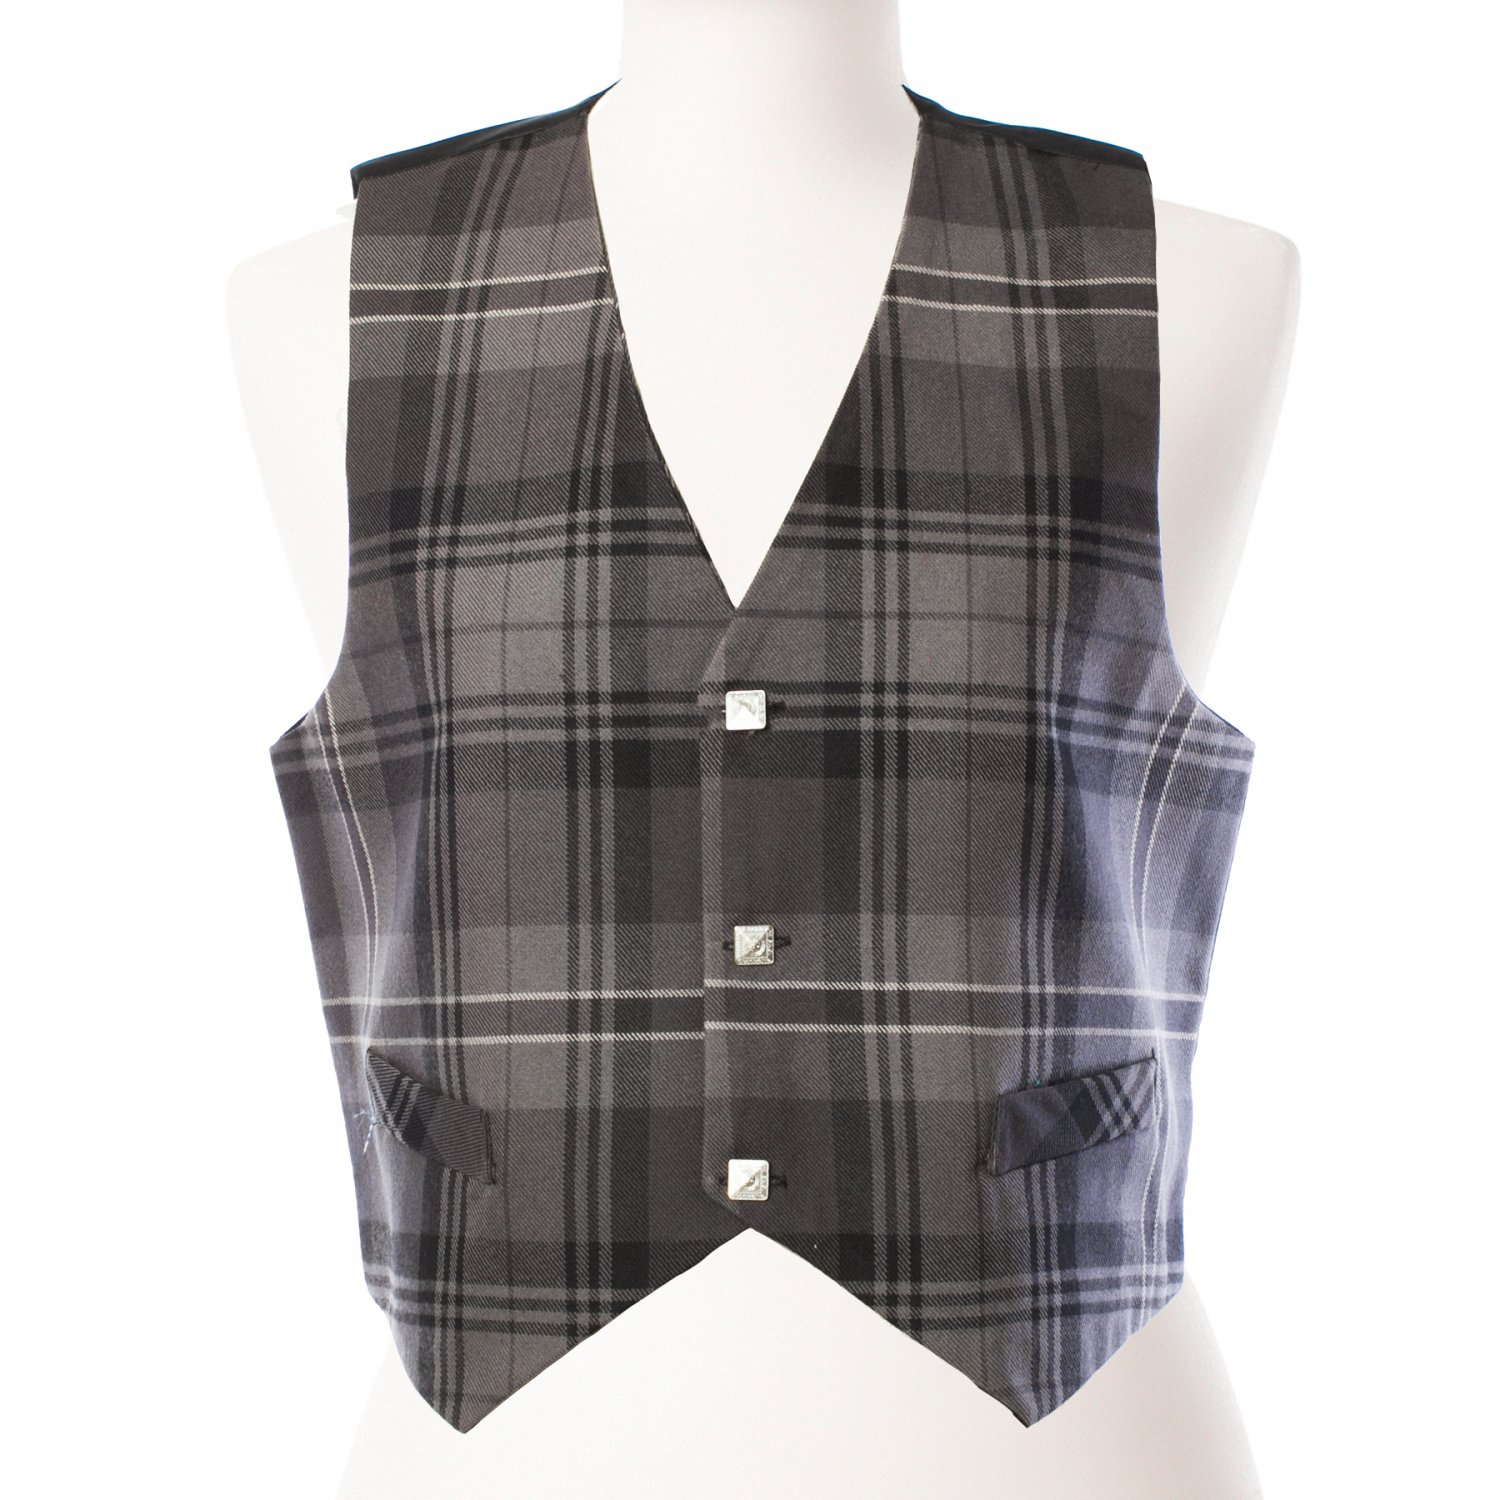 DE: Size 50 Premium Quality Gray Color Highland Tartan Plaid Vest Scottish Kilt Jacket Vest